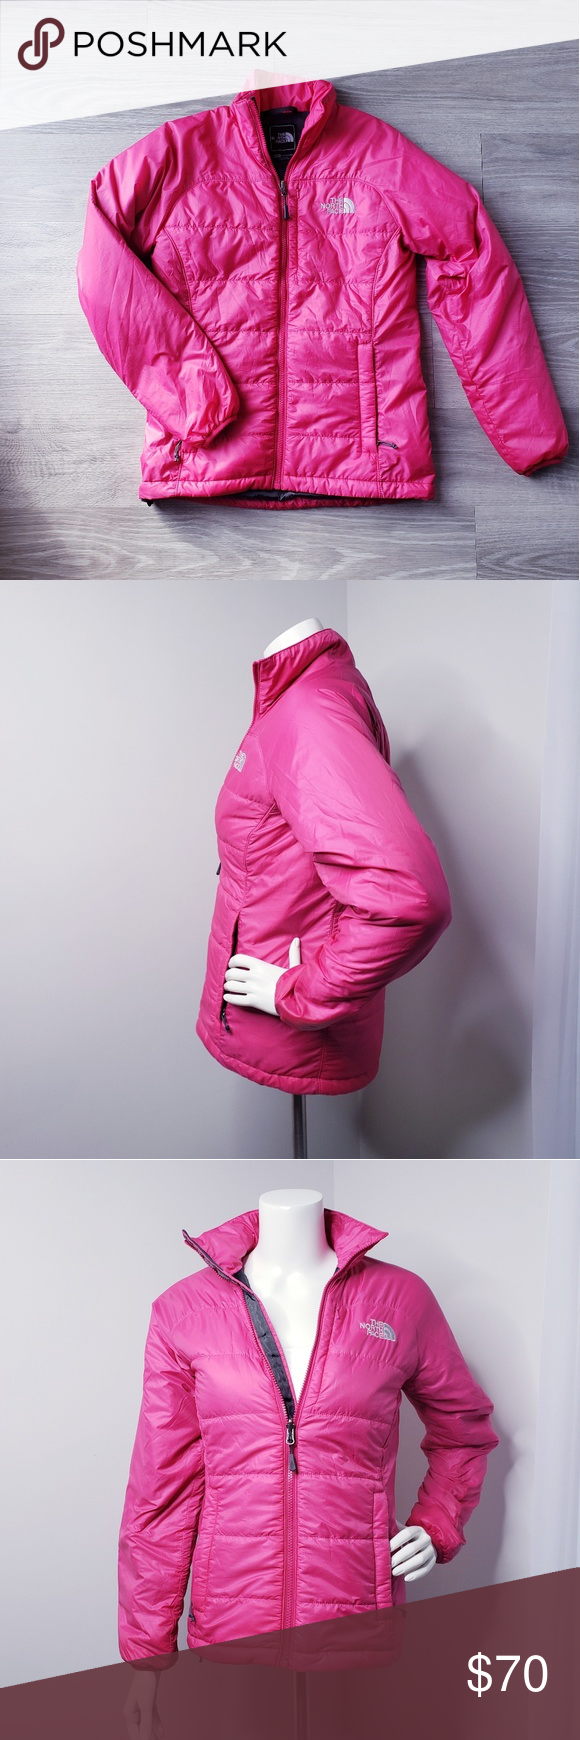 The North Face Hot Pink Puffer Jacket Jackets North Face Jacket The North Face [ 1740 x 580 Pixel ]